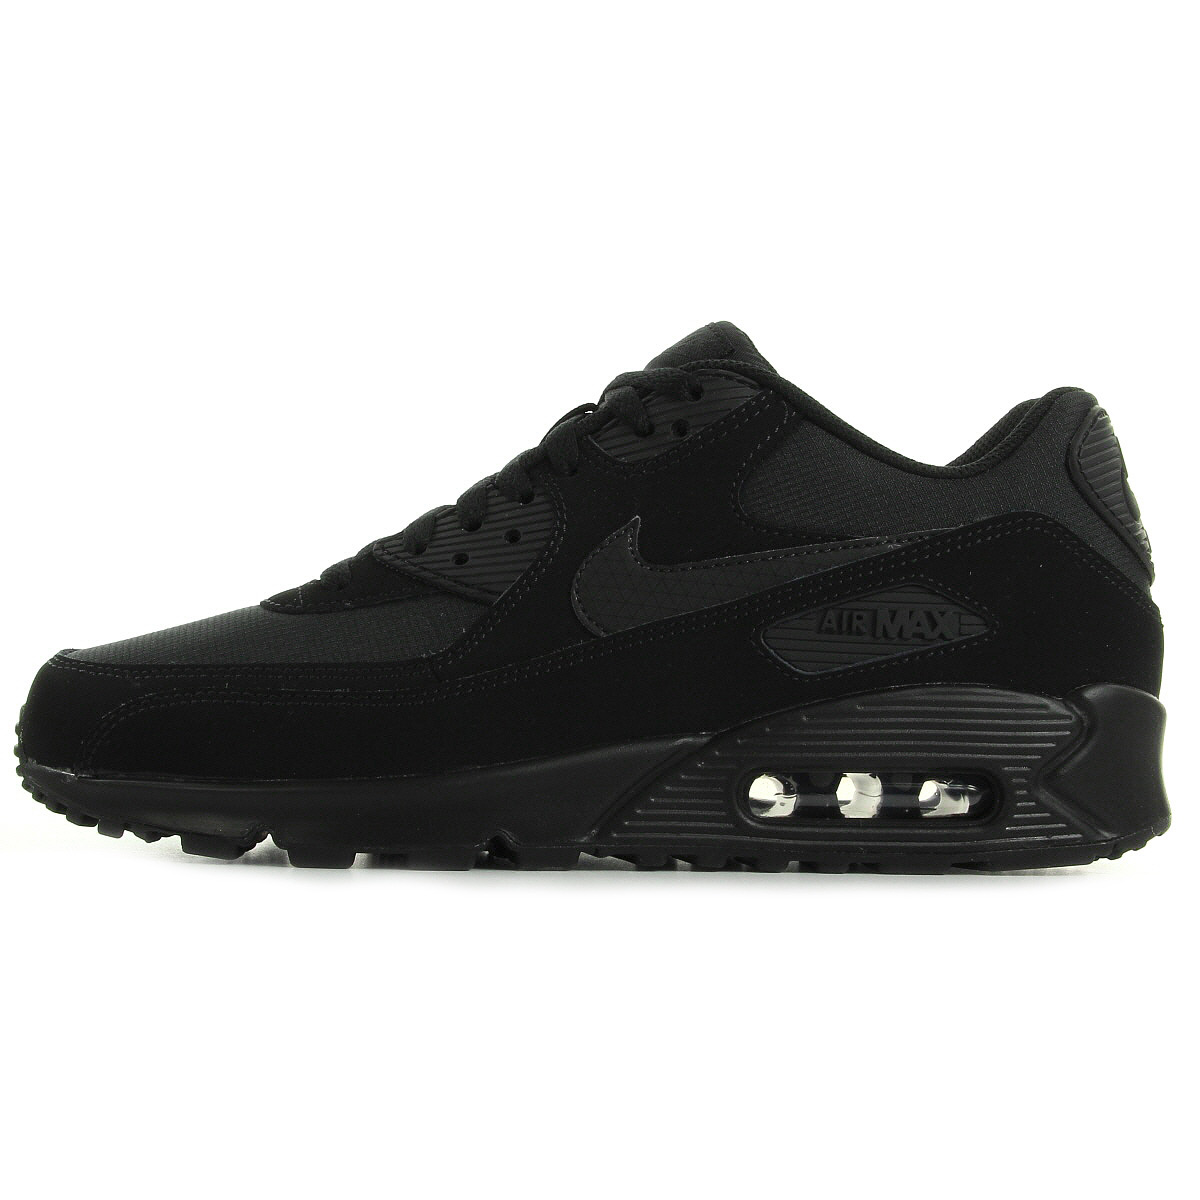 the best attitude 4524a 88923 Basket Nike Air Max 1 Ultra Esse T0CHt491378 2 LRG Basket Nike Air Max 1  Ultra Esse T0CHt491378 2 LRG Baskets wmns air max 90 jcrd leather Goddess